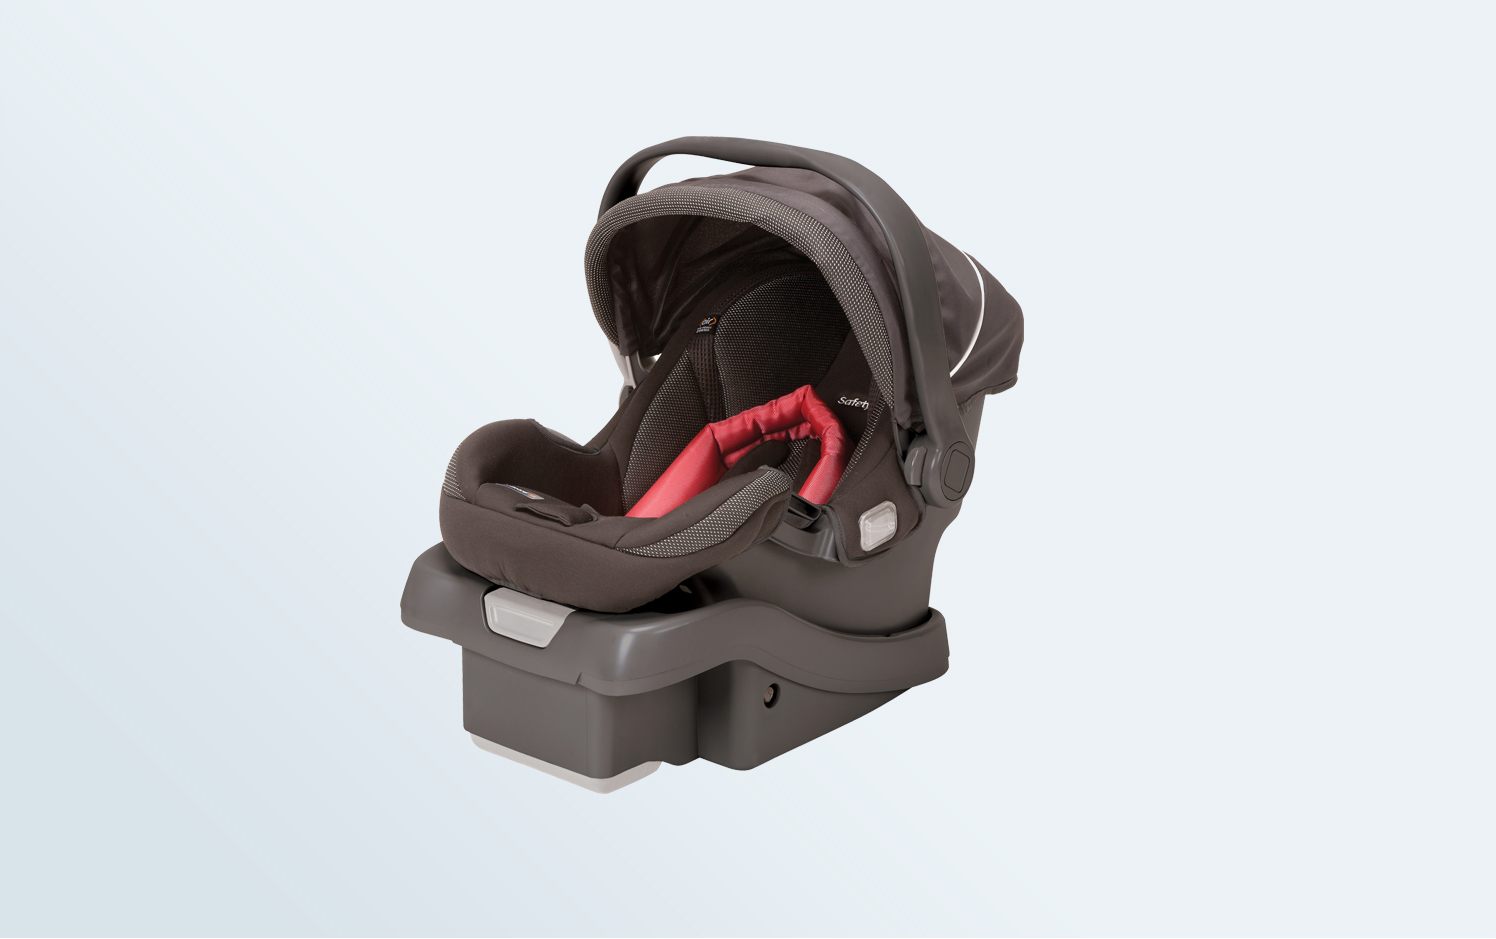 Baby Capsule Convertible Car Seat Best Car Seats 2019 Infant And Convertible Car Seat